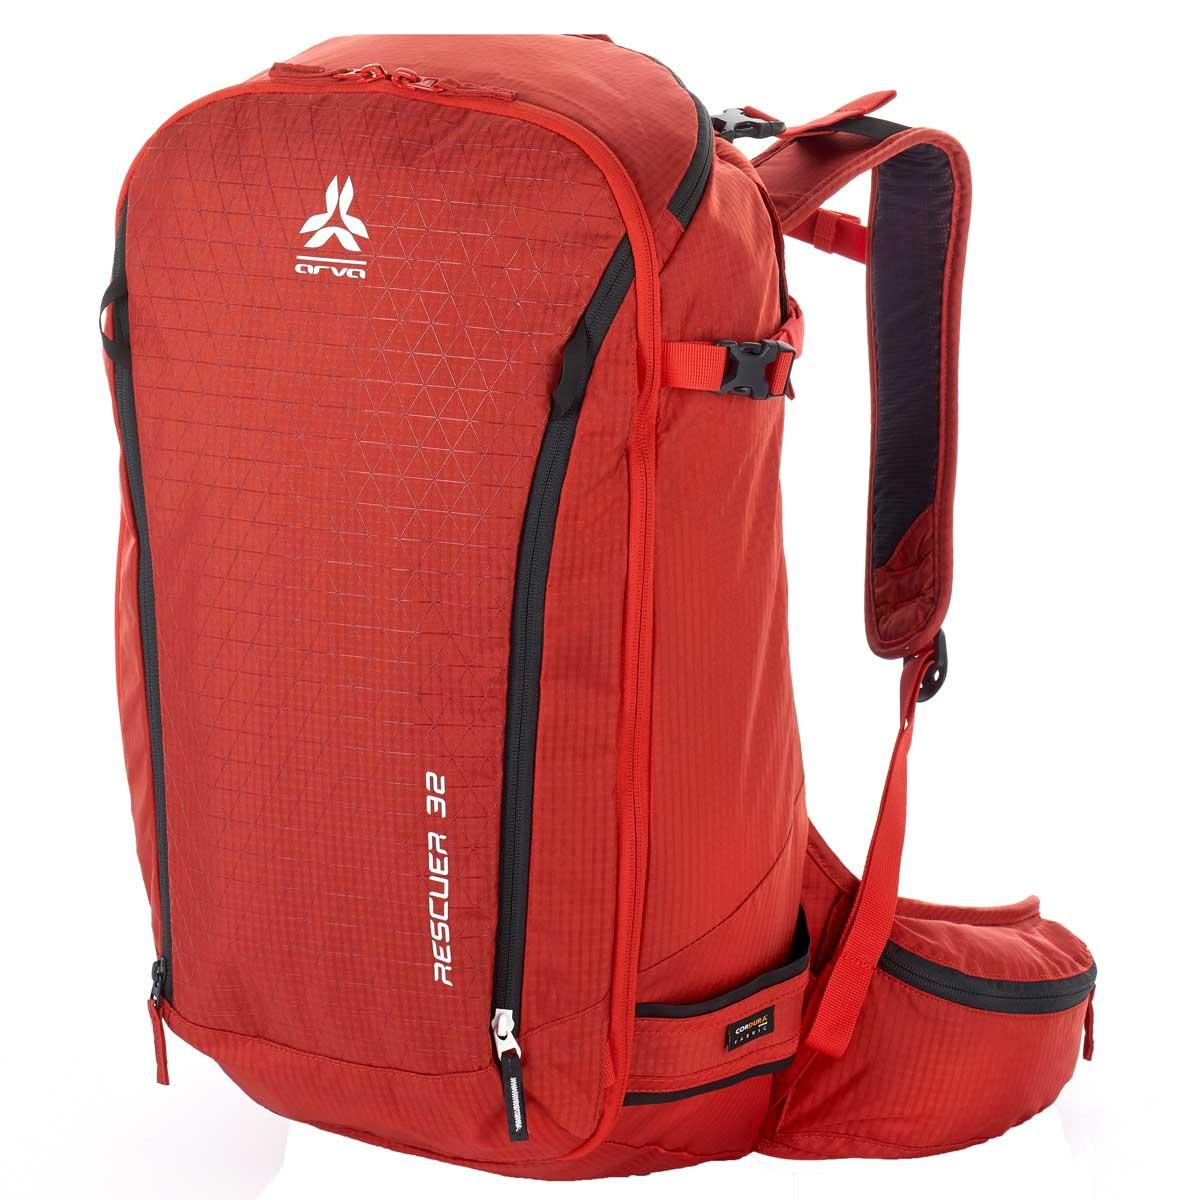 Arva Rescuer 32L Backpack in Red Clay